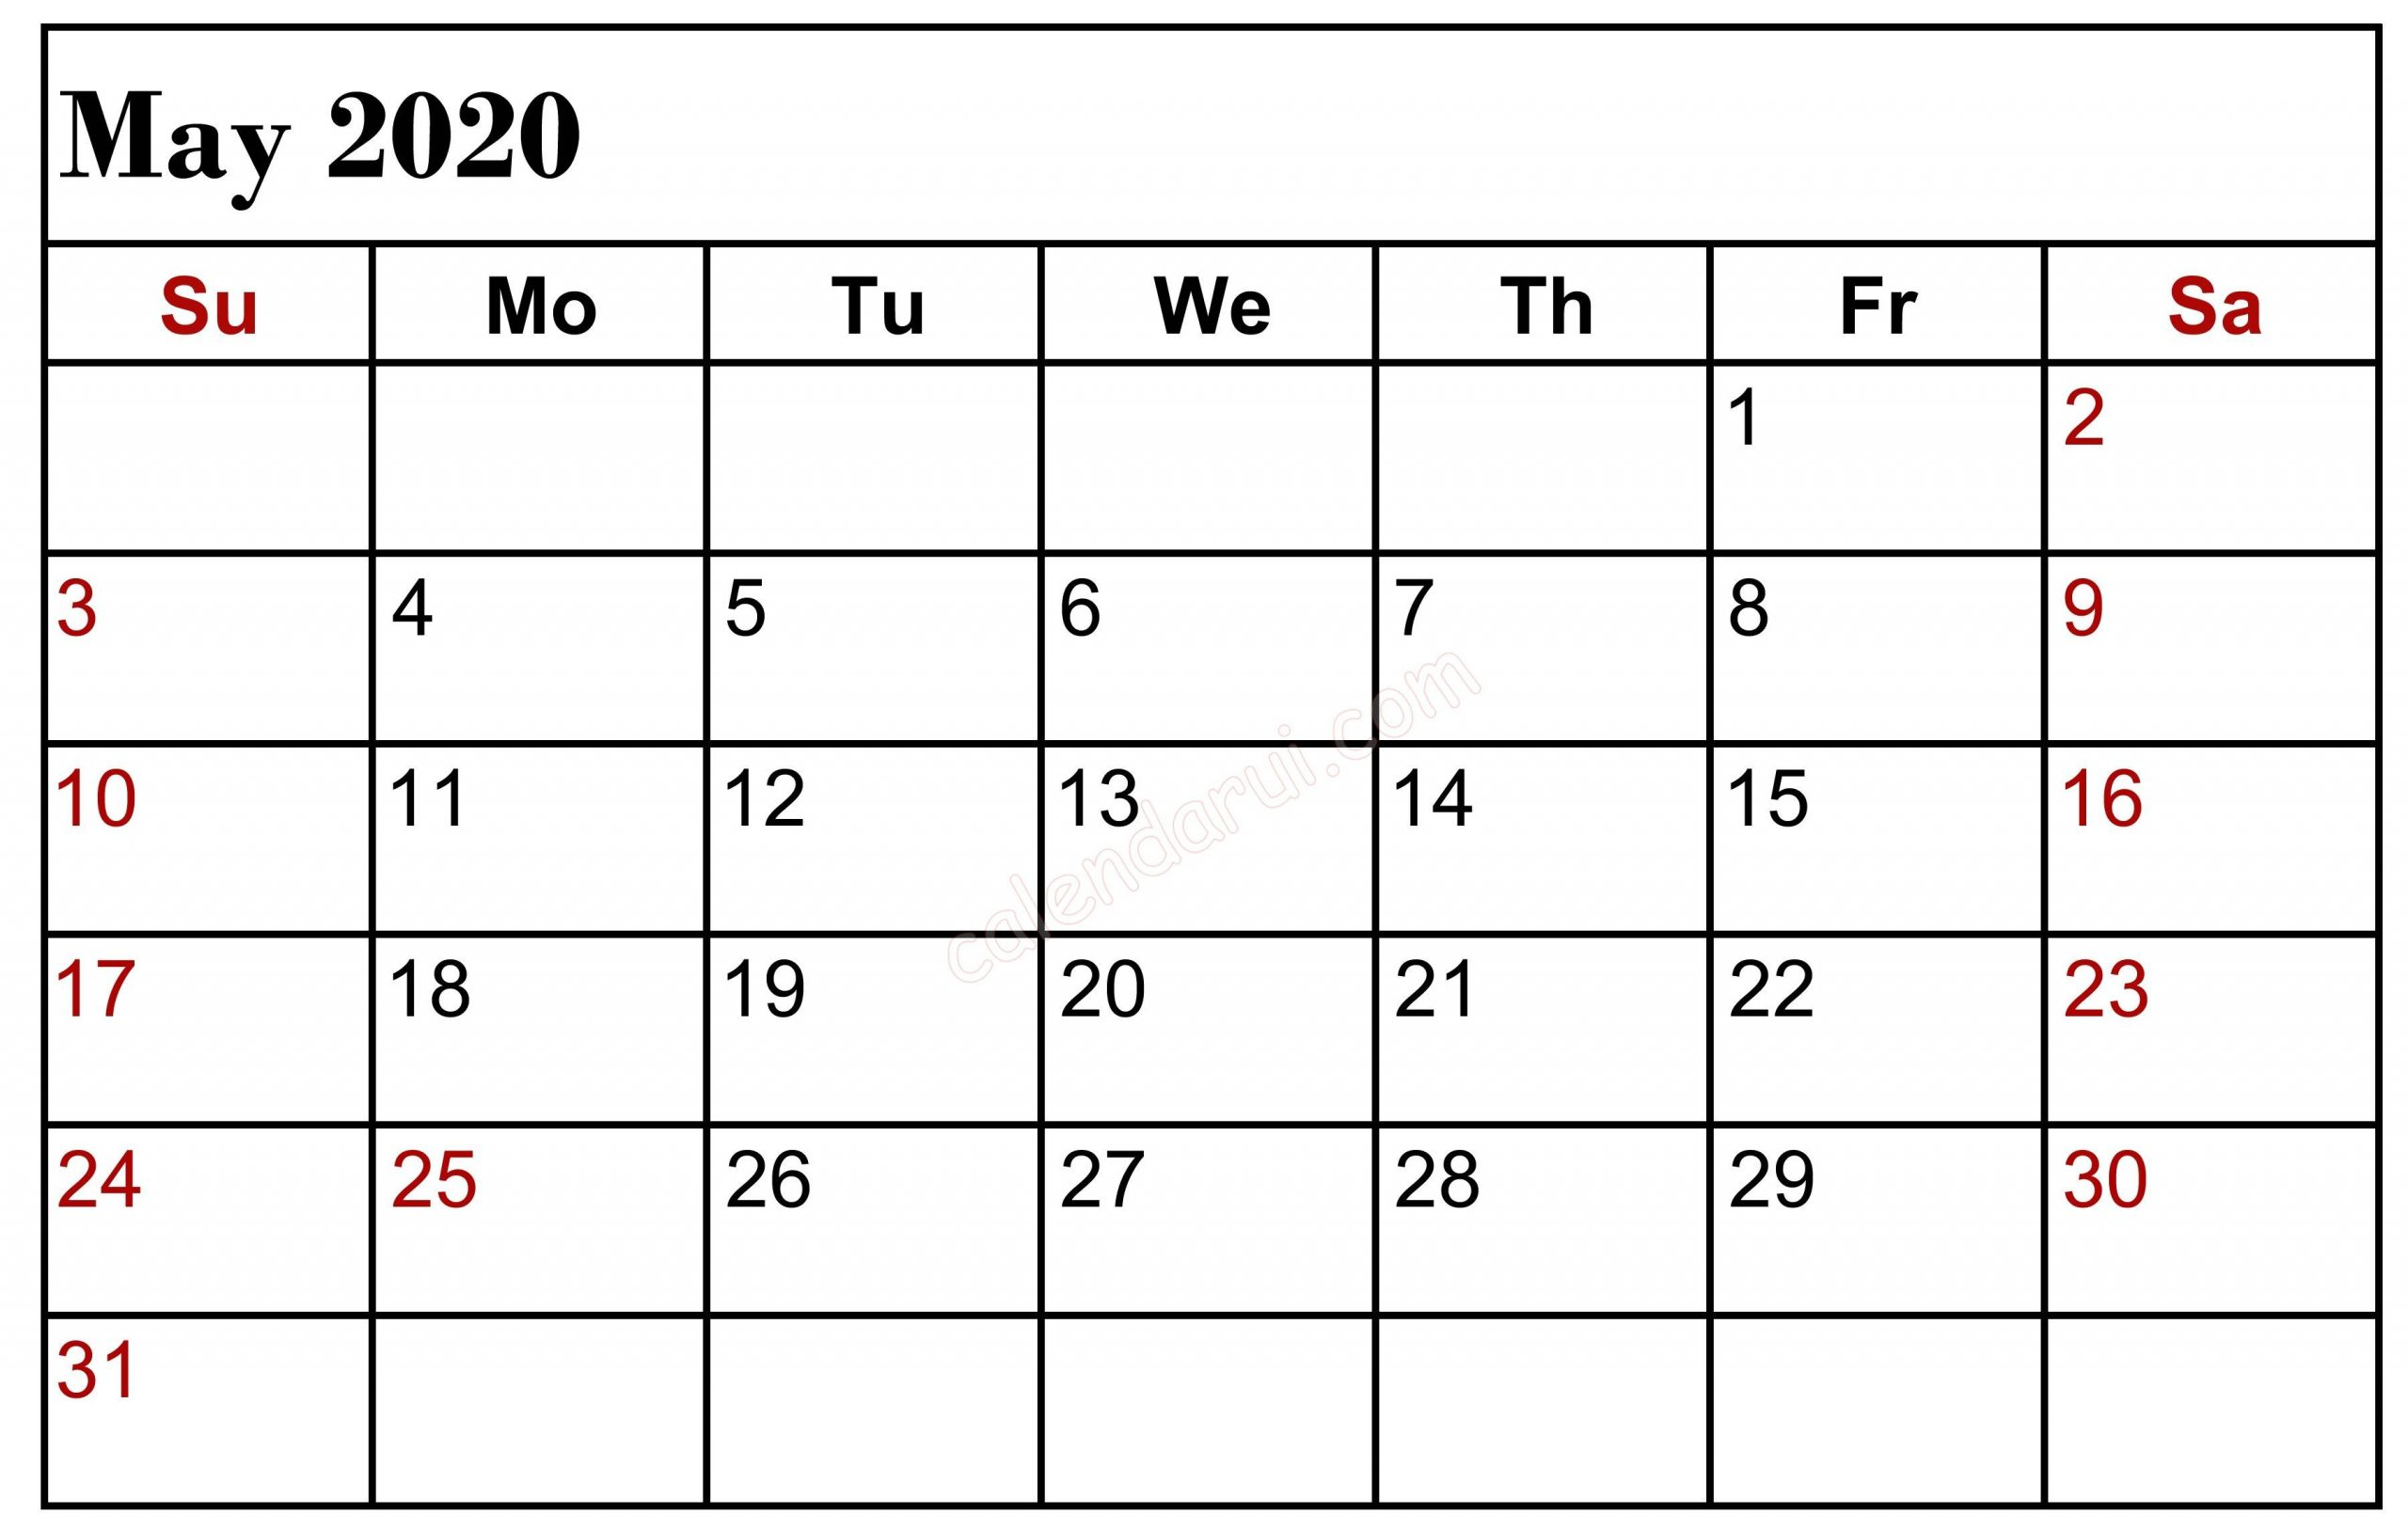 May 2020 Calendar with Holidays Uk